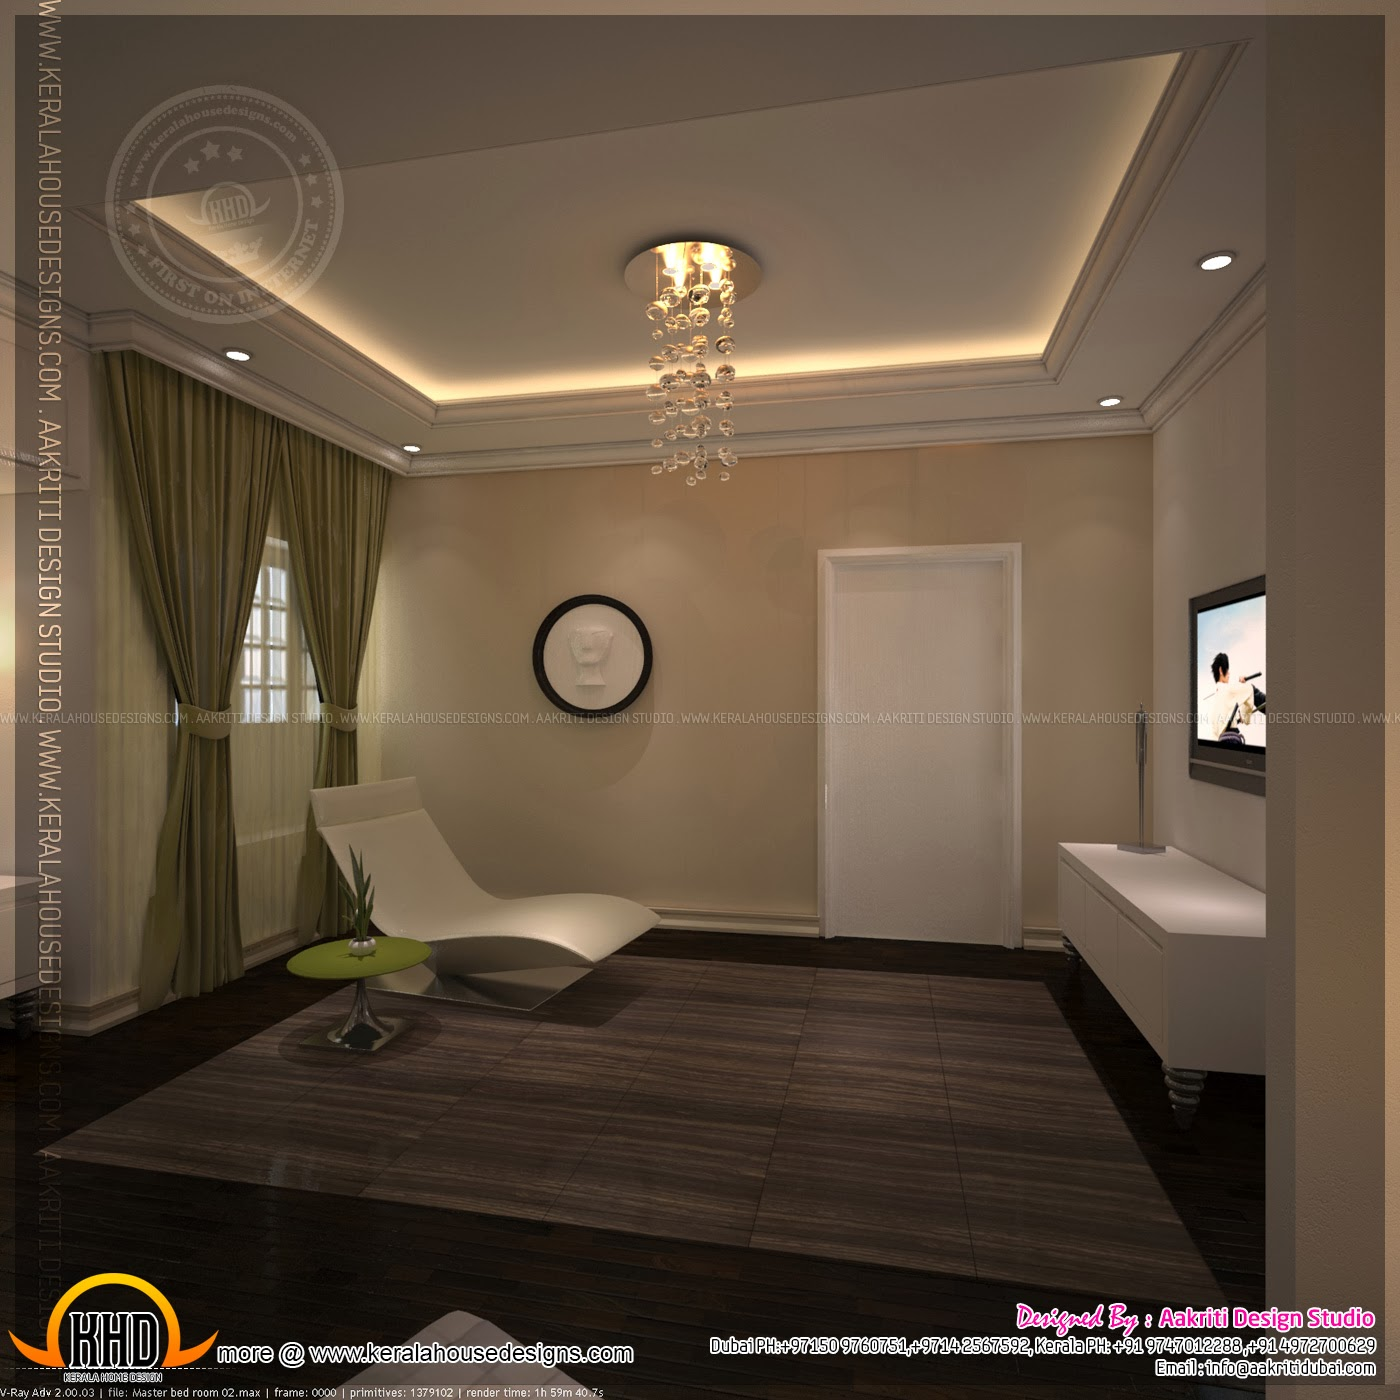 Kerala House Designs Plans Interior: Master Bedroom And Bathroom Interior Design